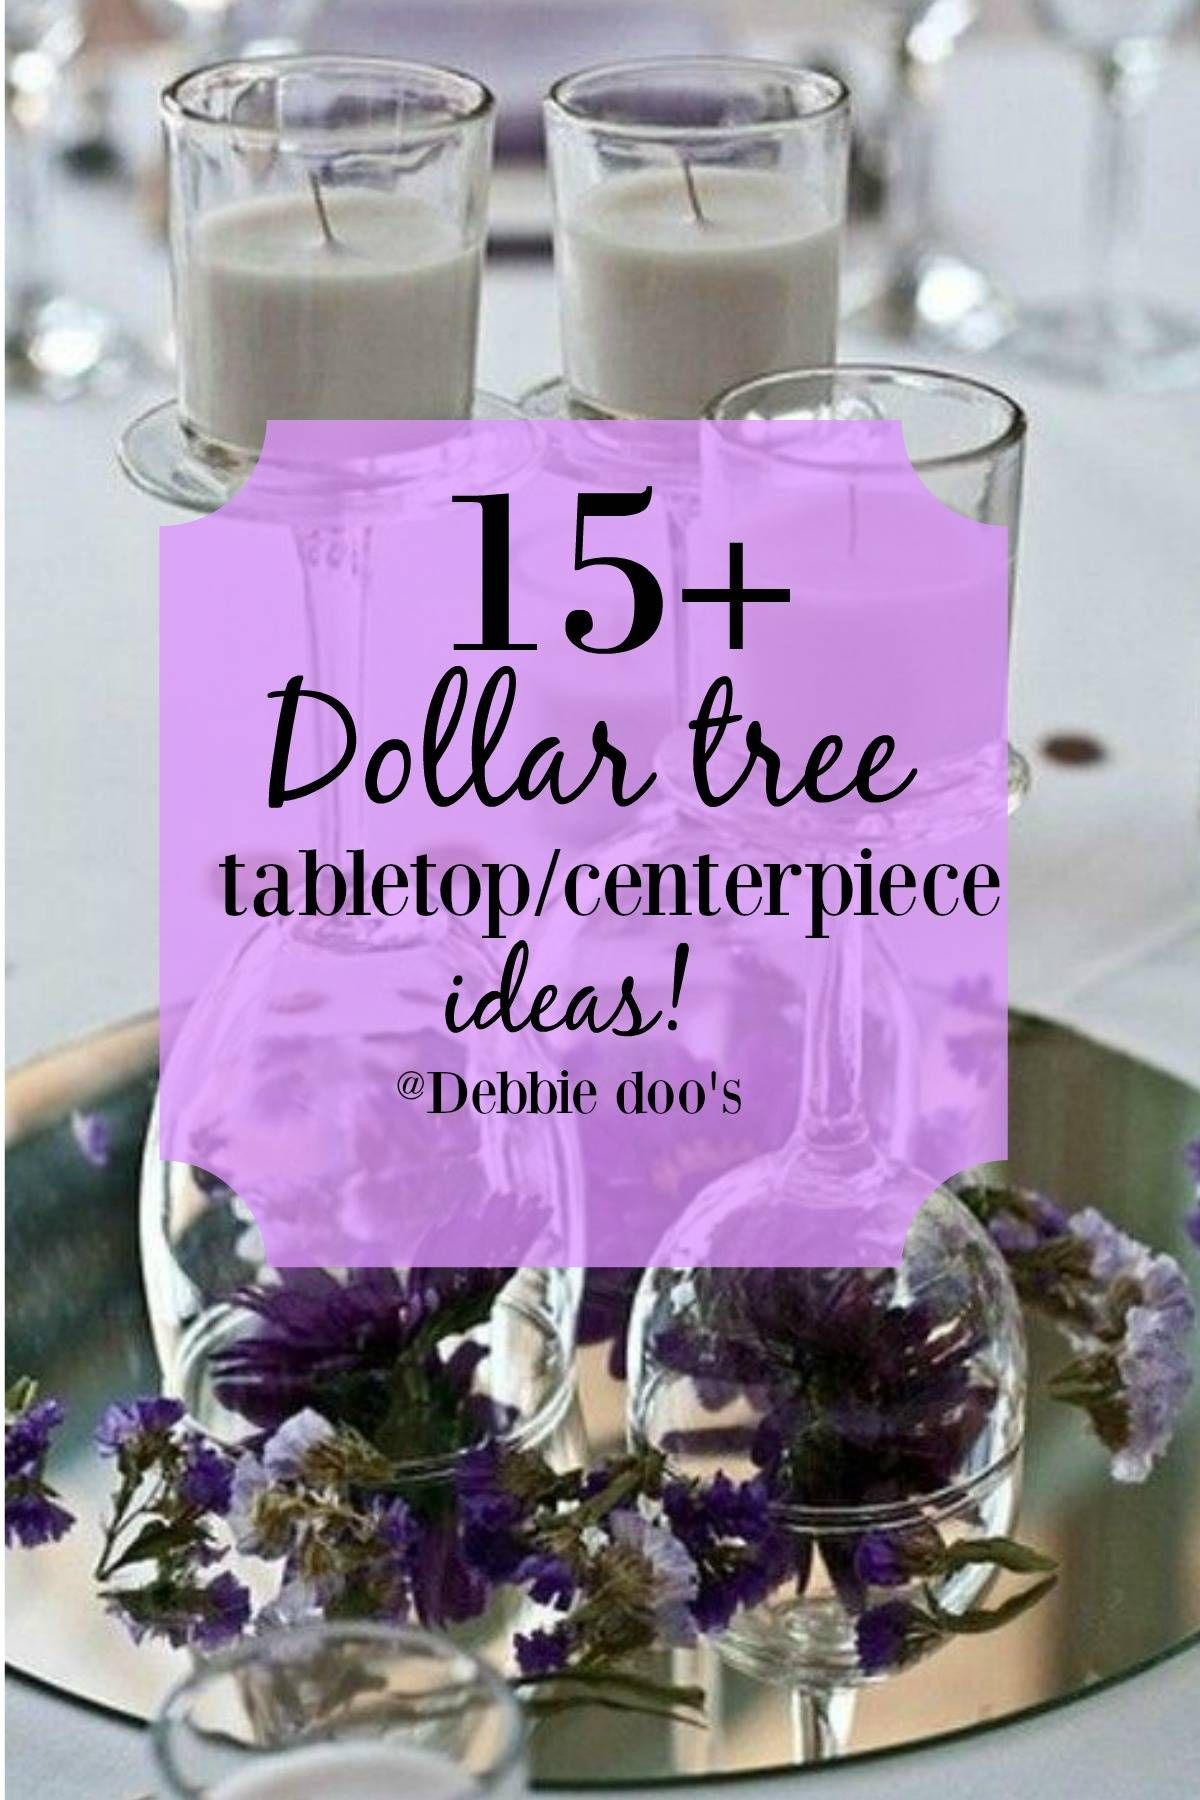 15 Dollar tree tabletop ideas Tabletop Centerpieces and Dollar